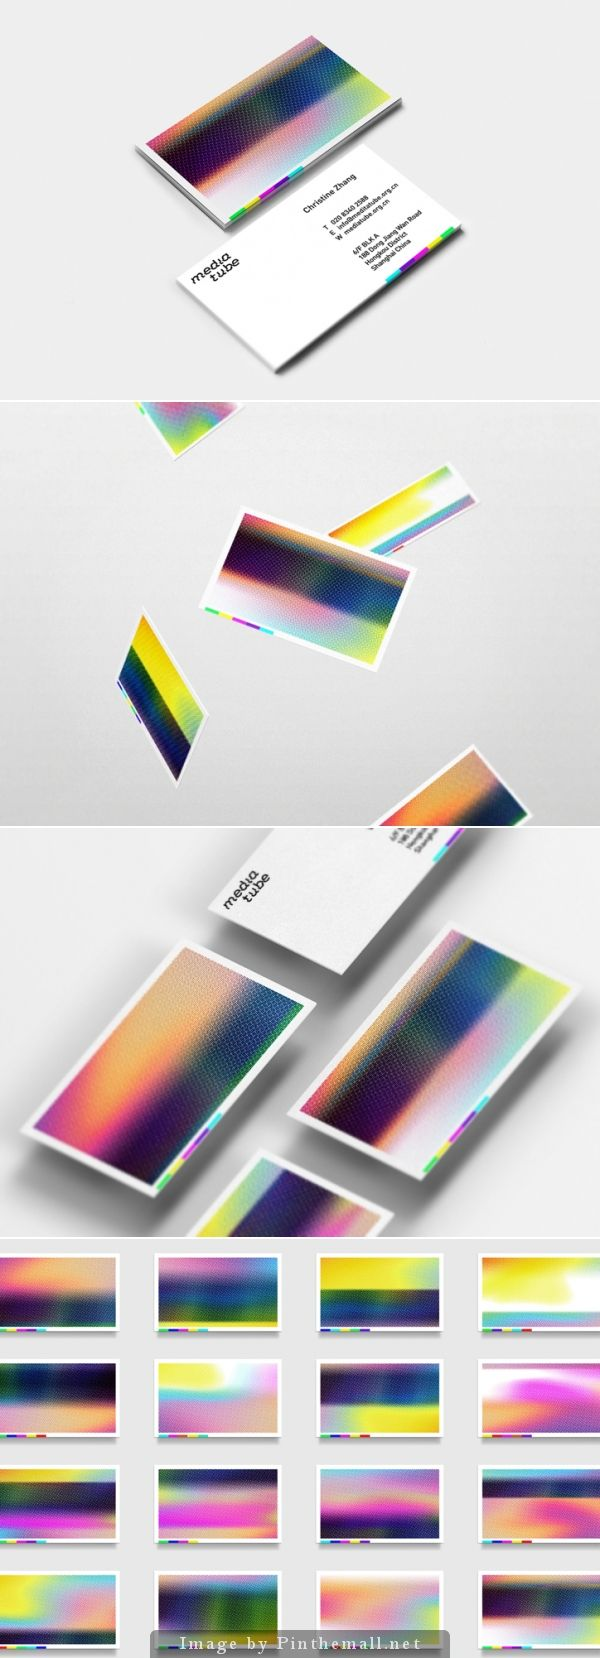 These business cards are highly original and really eye-catching. They are minim...